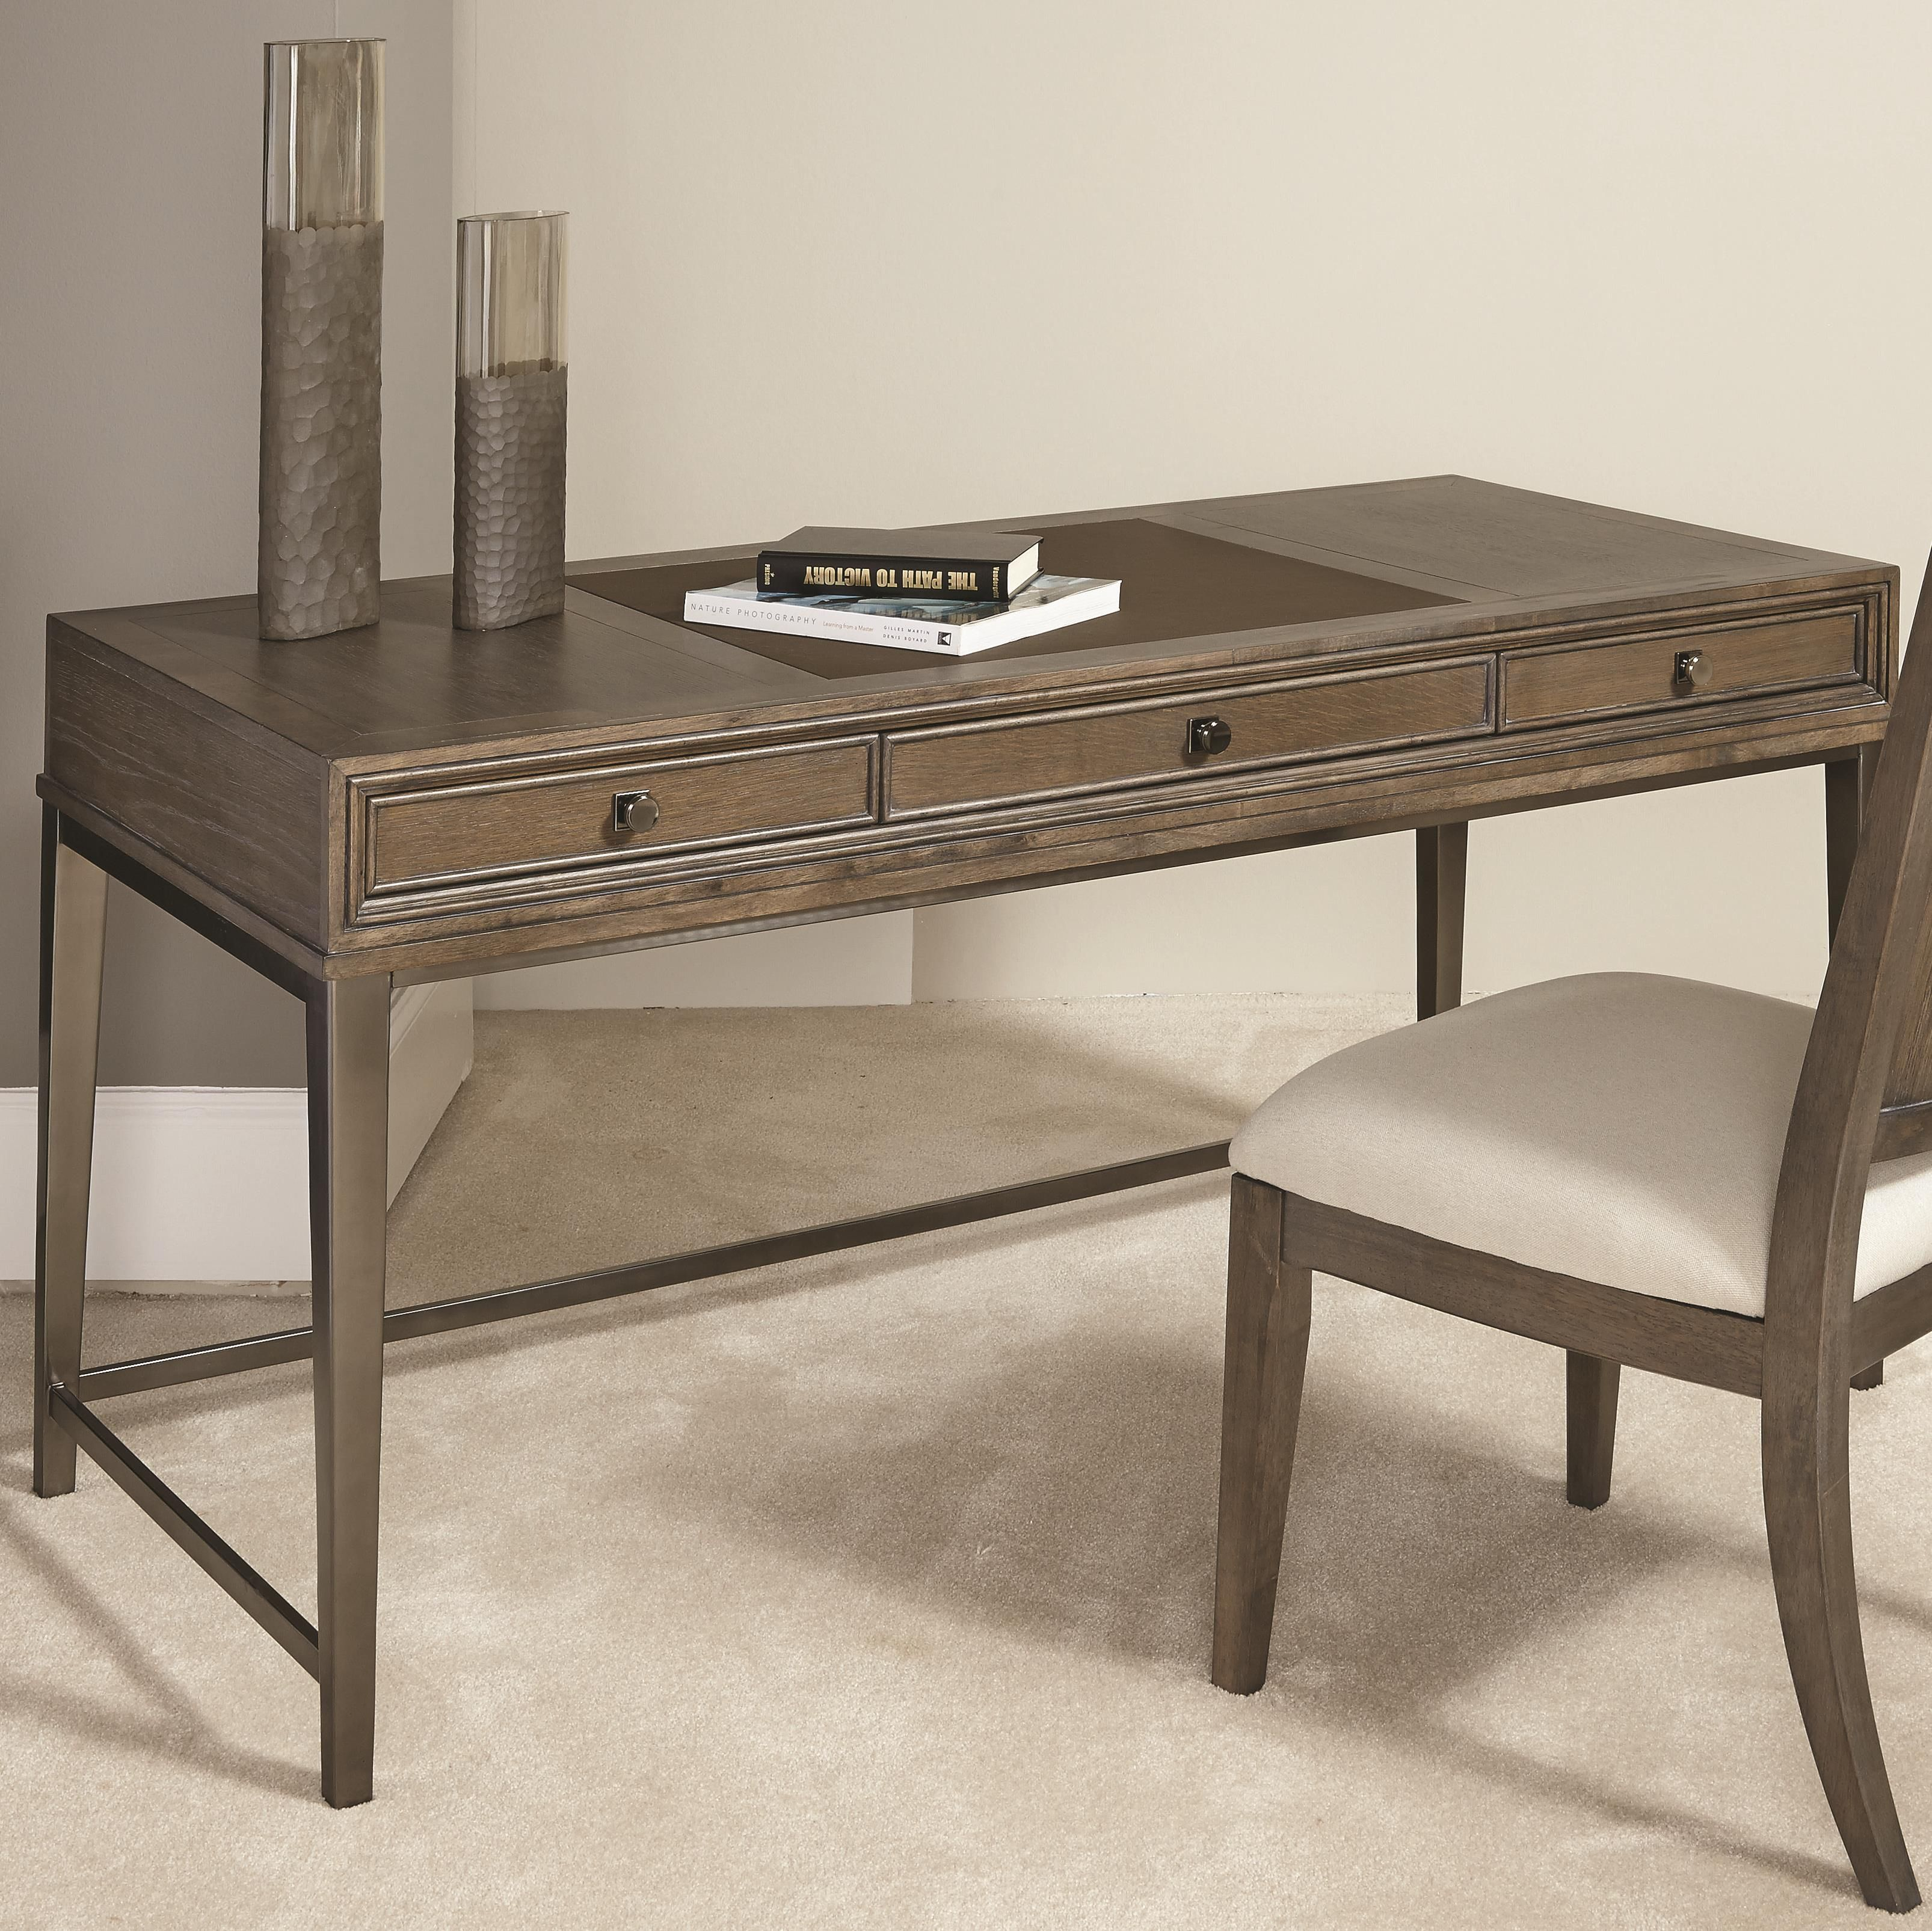 Park Studio Contemporary Writing Desk With 3 Drawers And